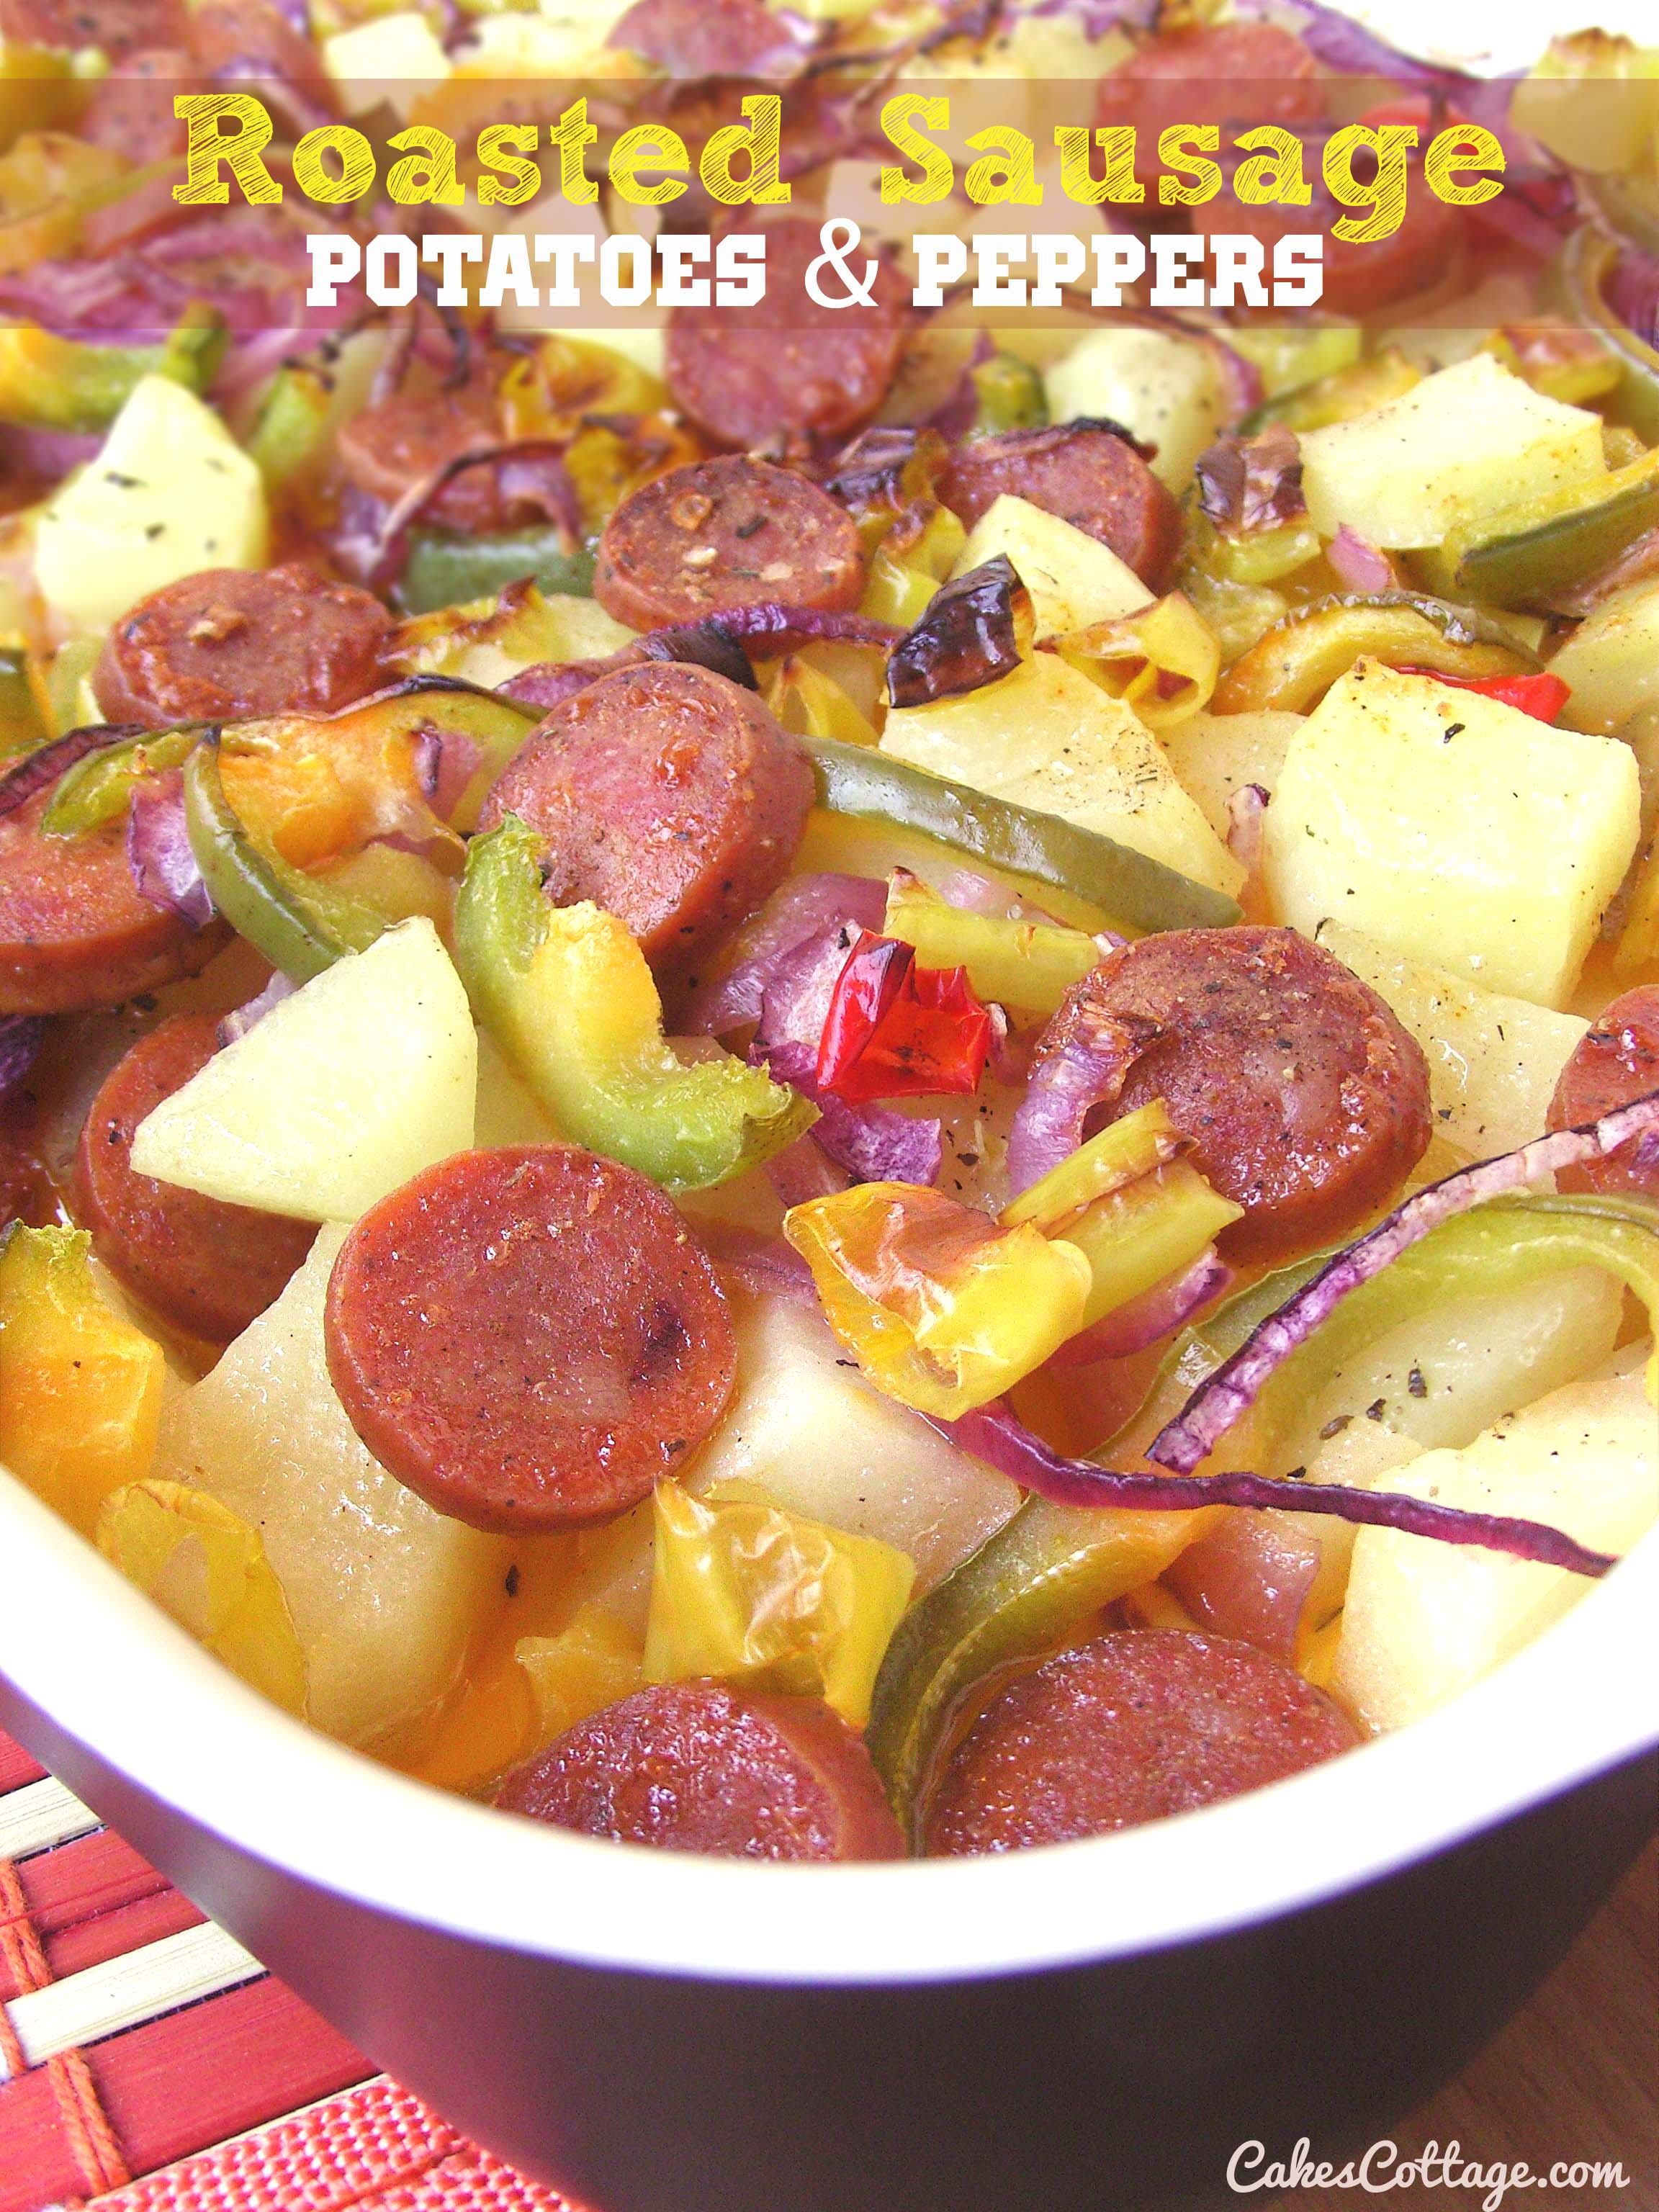 Oven Roasted Sausage Potatoes & Peppers | Cakescottage